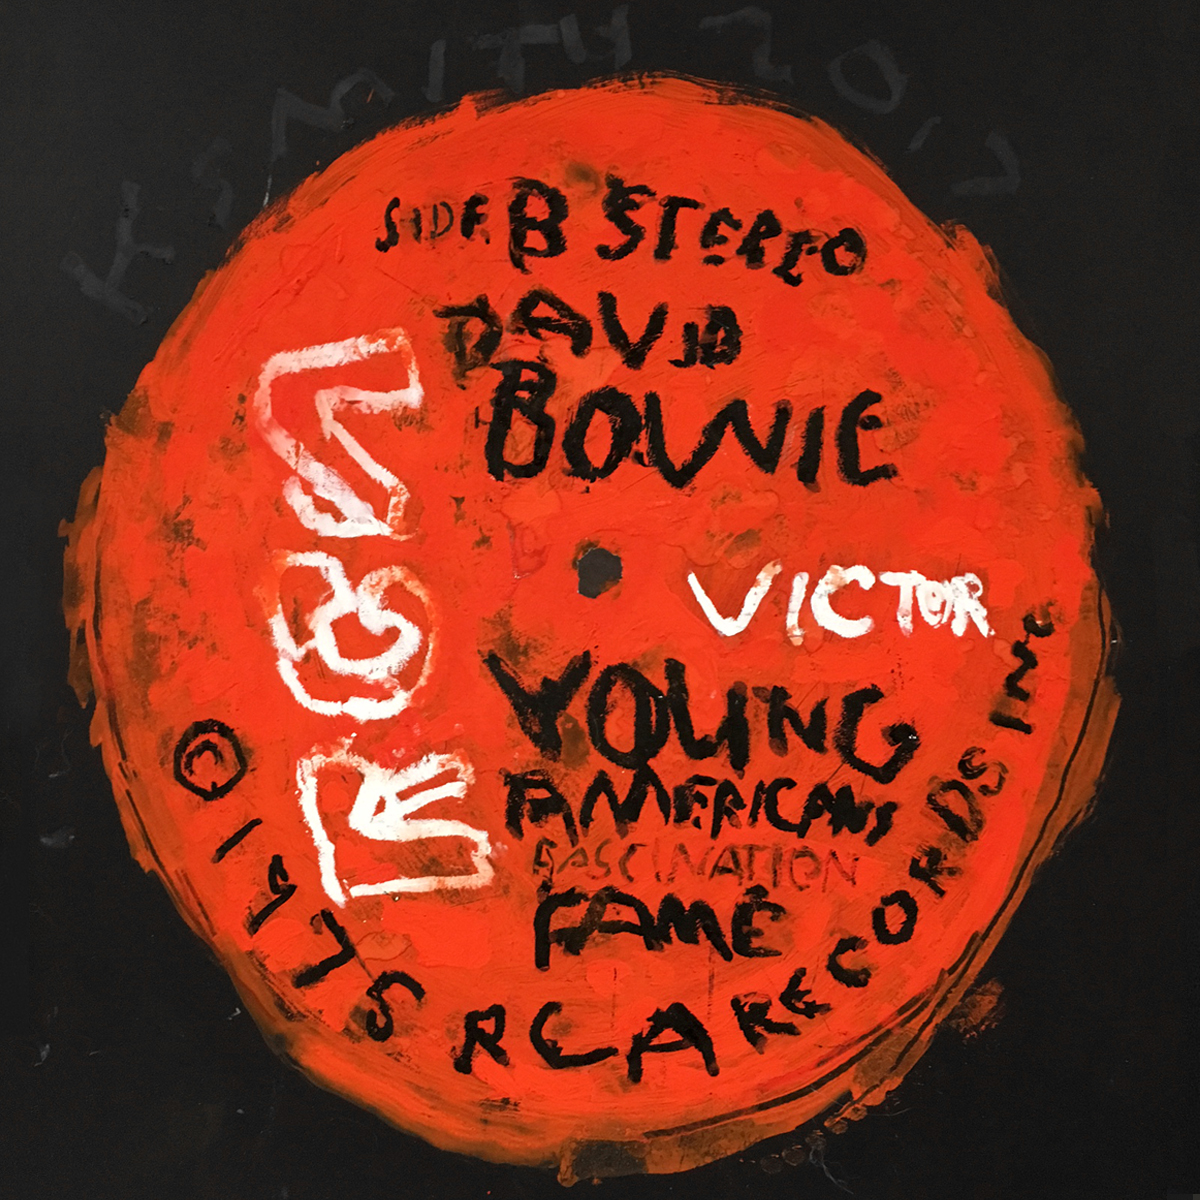 David Bowie / Young Americans